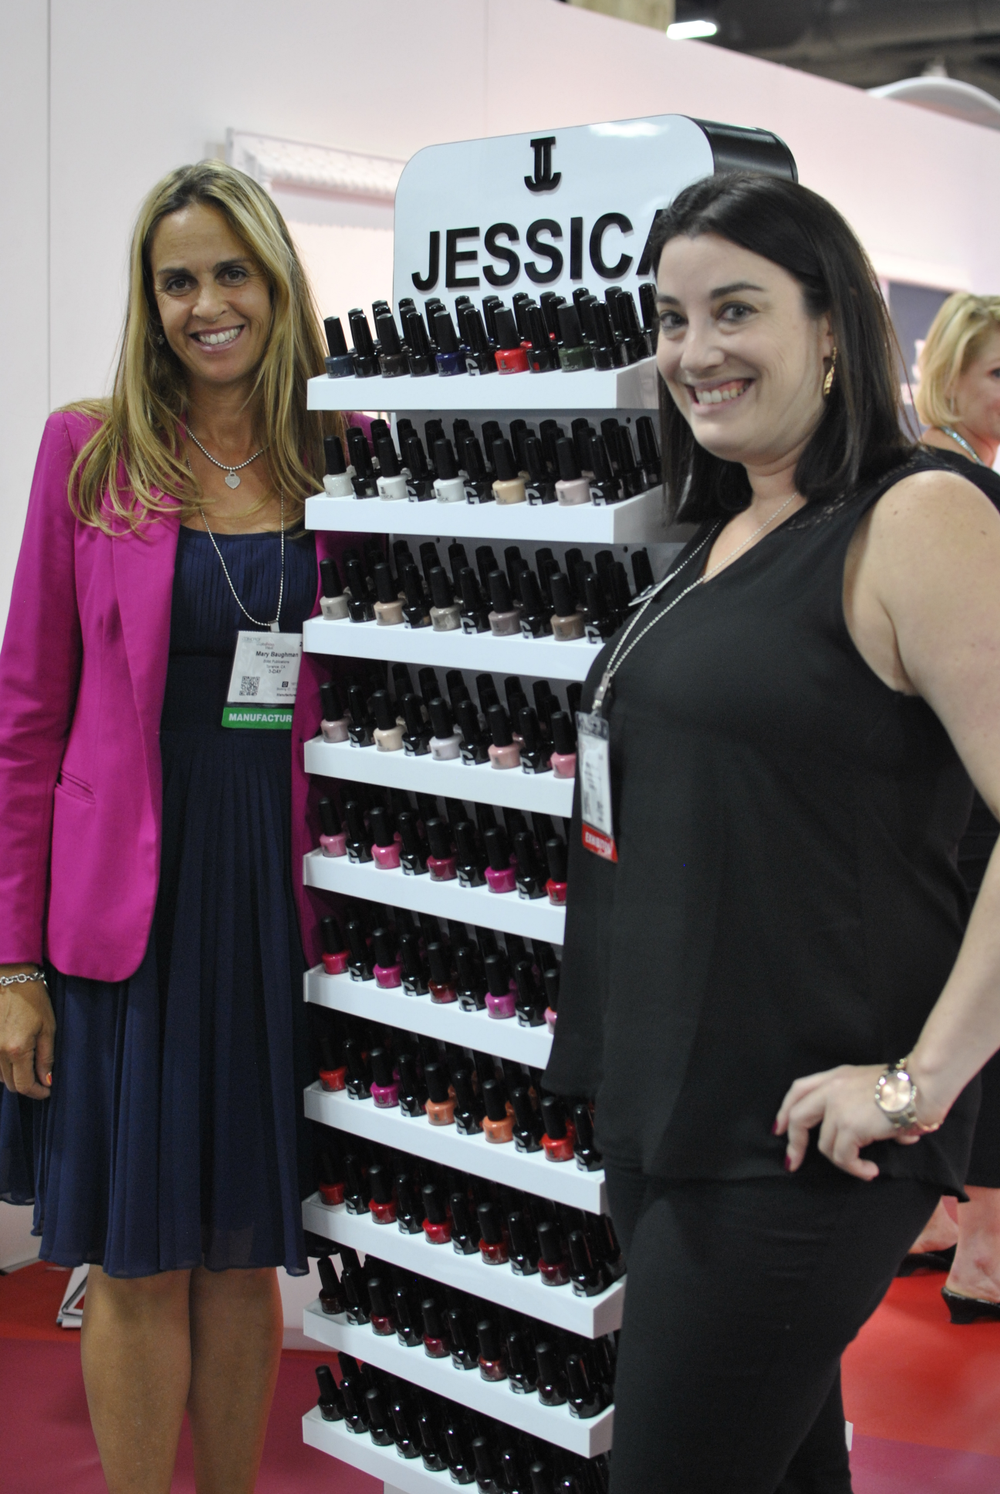 <p>NAILS' Mary Baughman enjoyed seeing the upcoming collections from Jessica's Haley Marcus.</p>